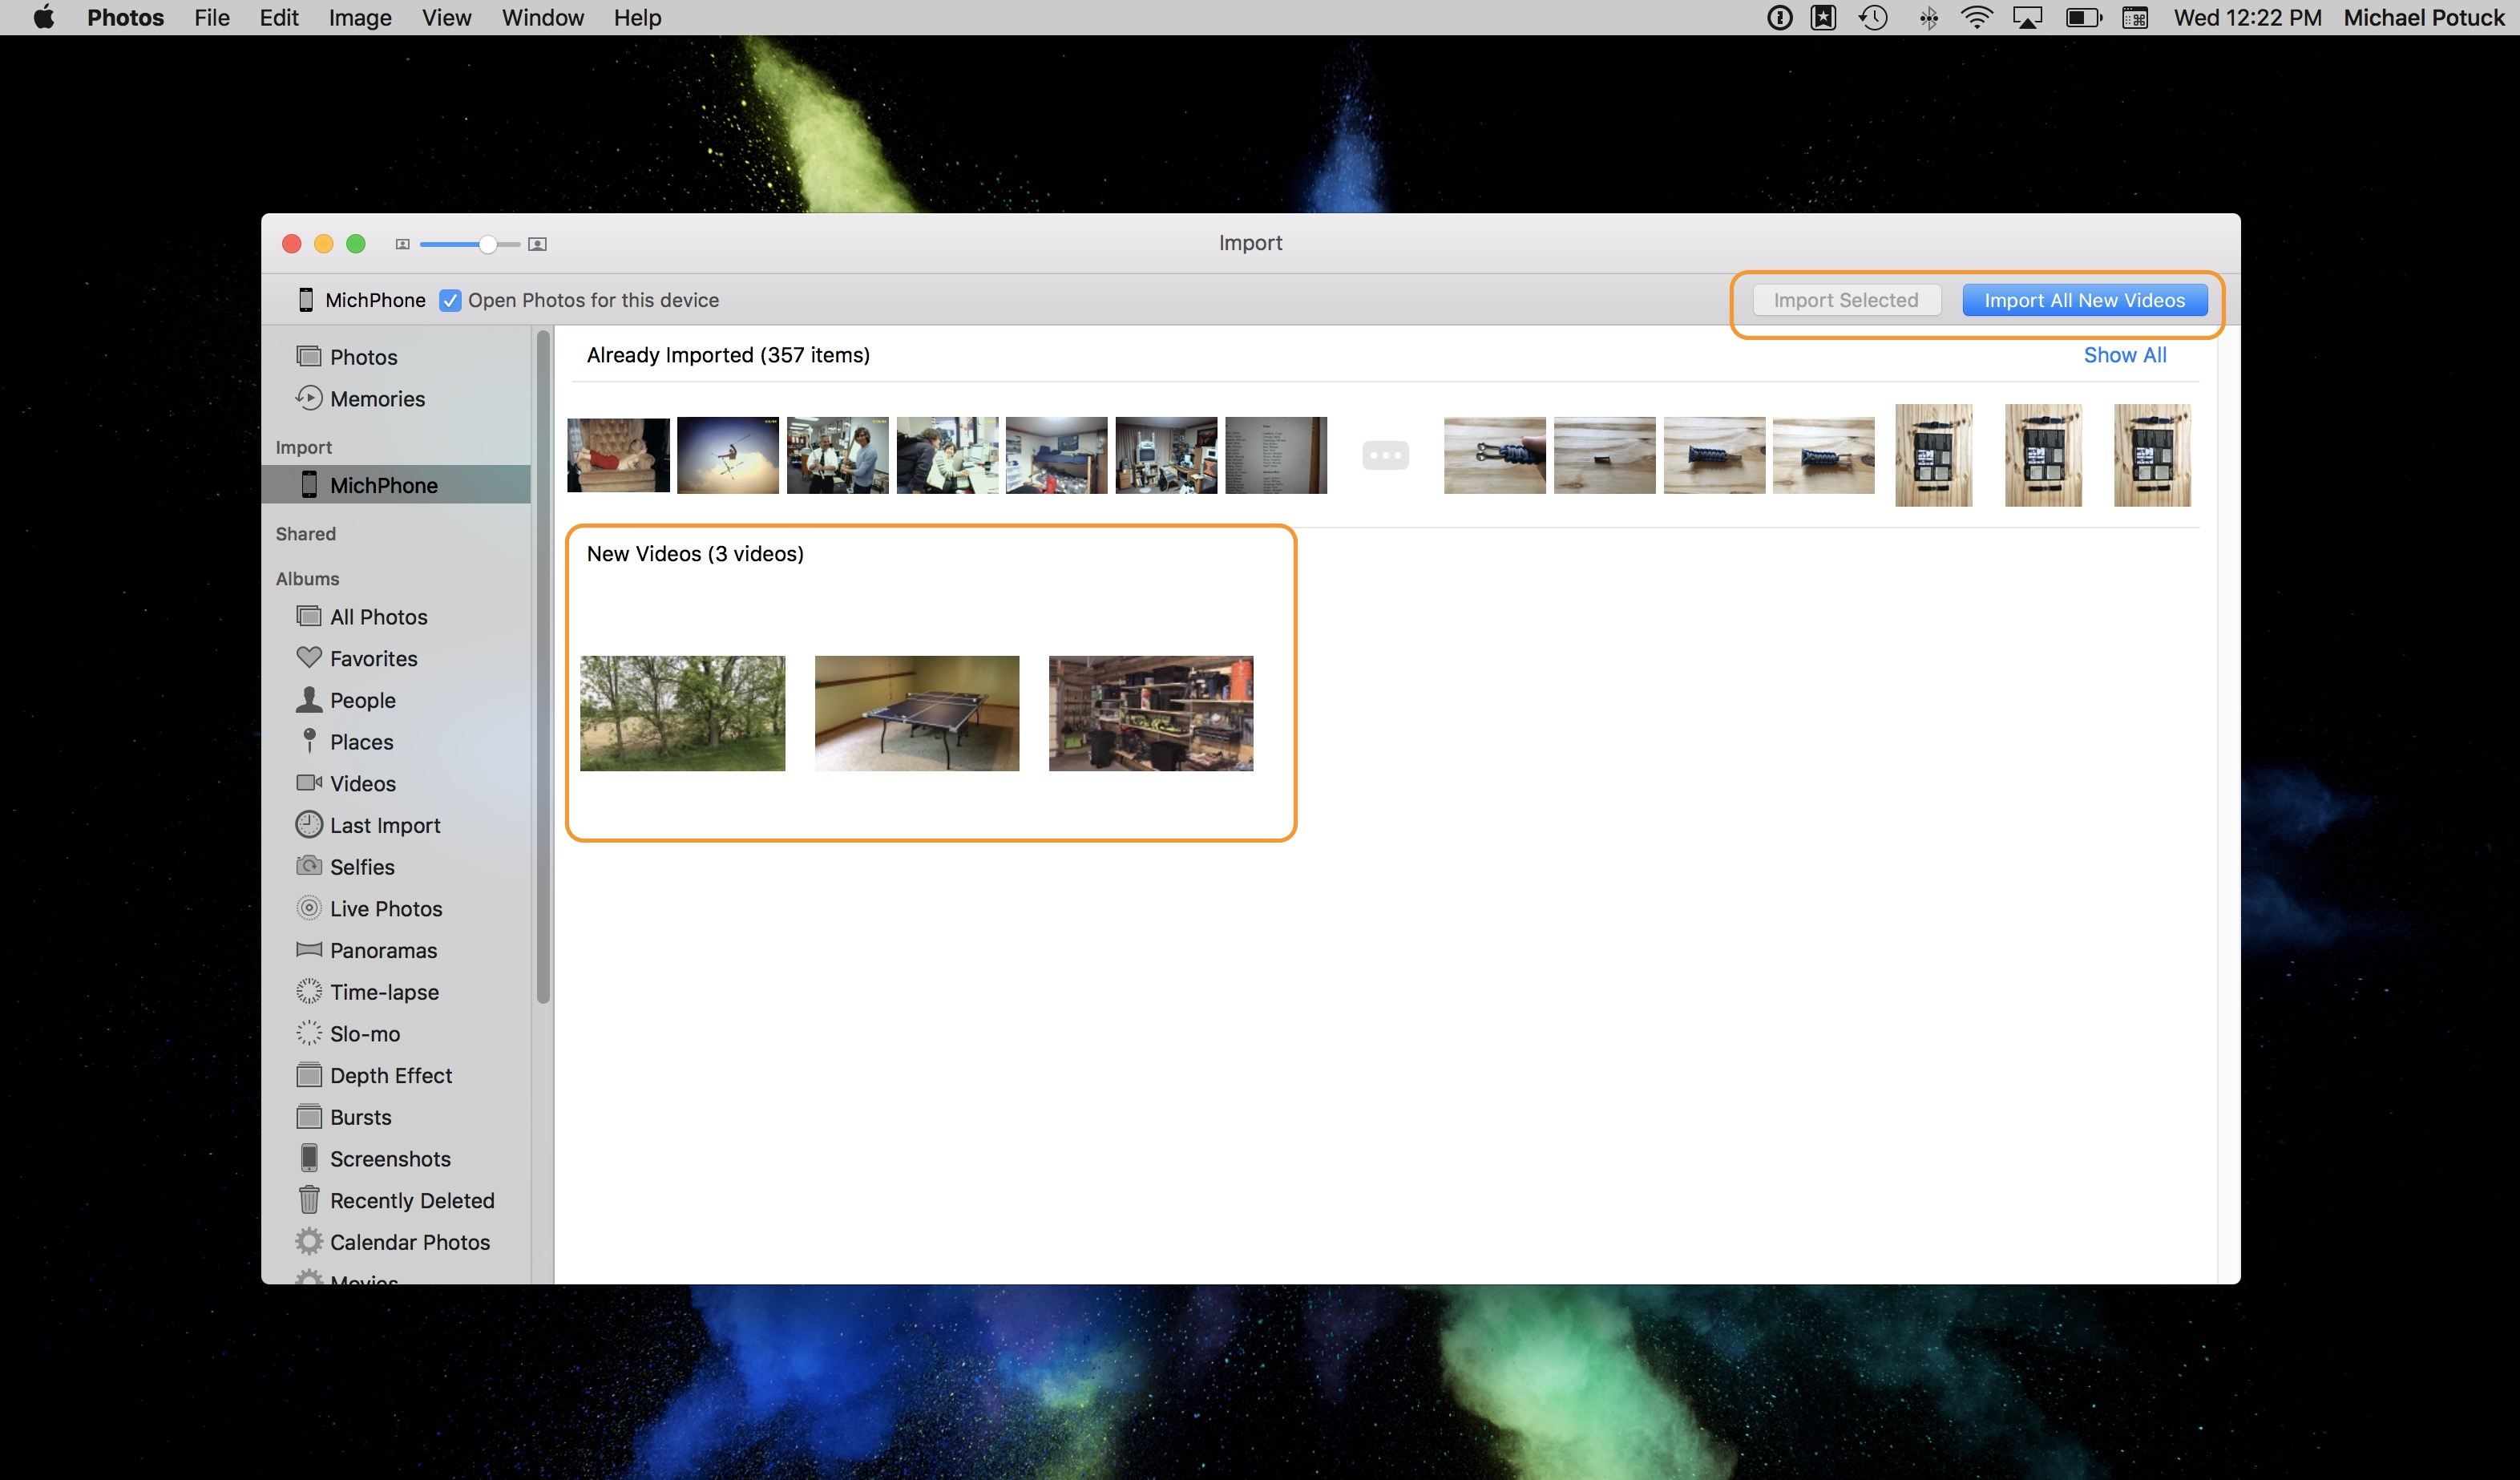 how to import videos from iphone to mac 9to5mac